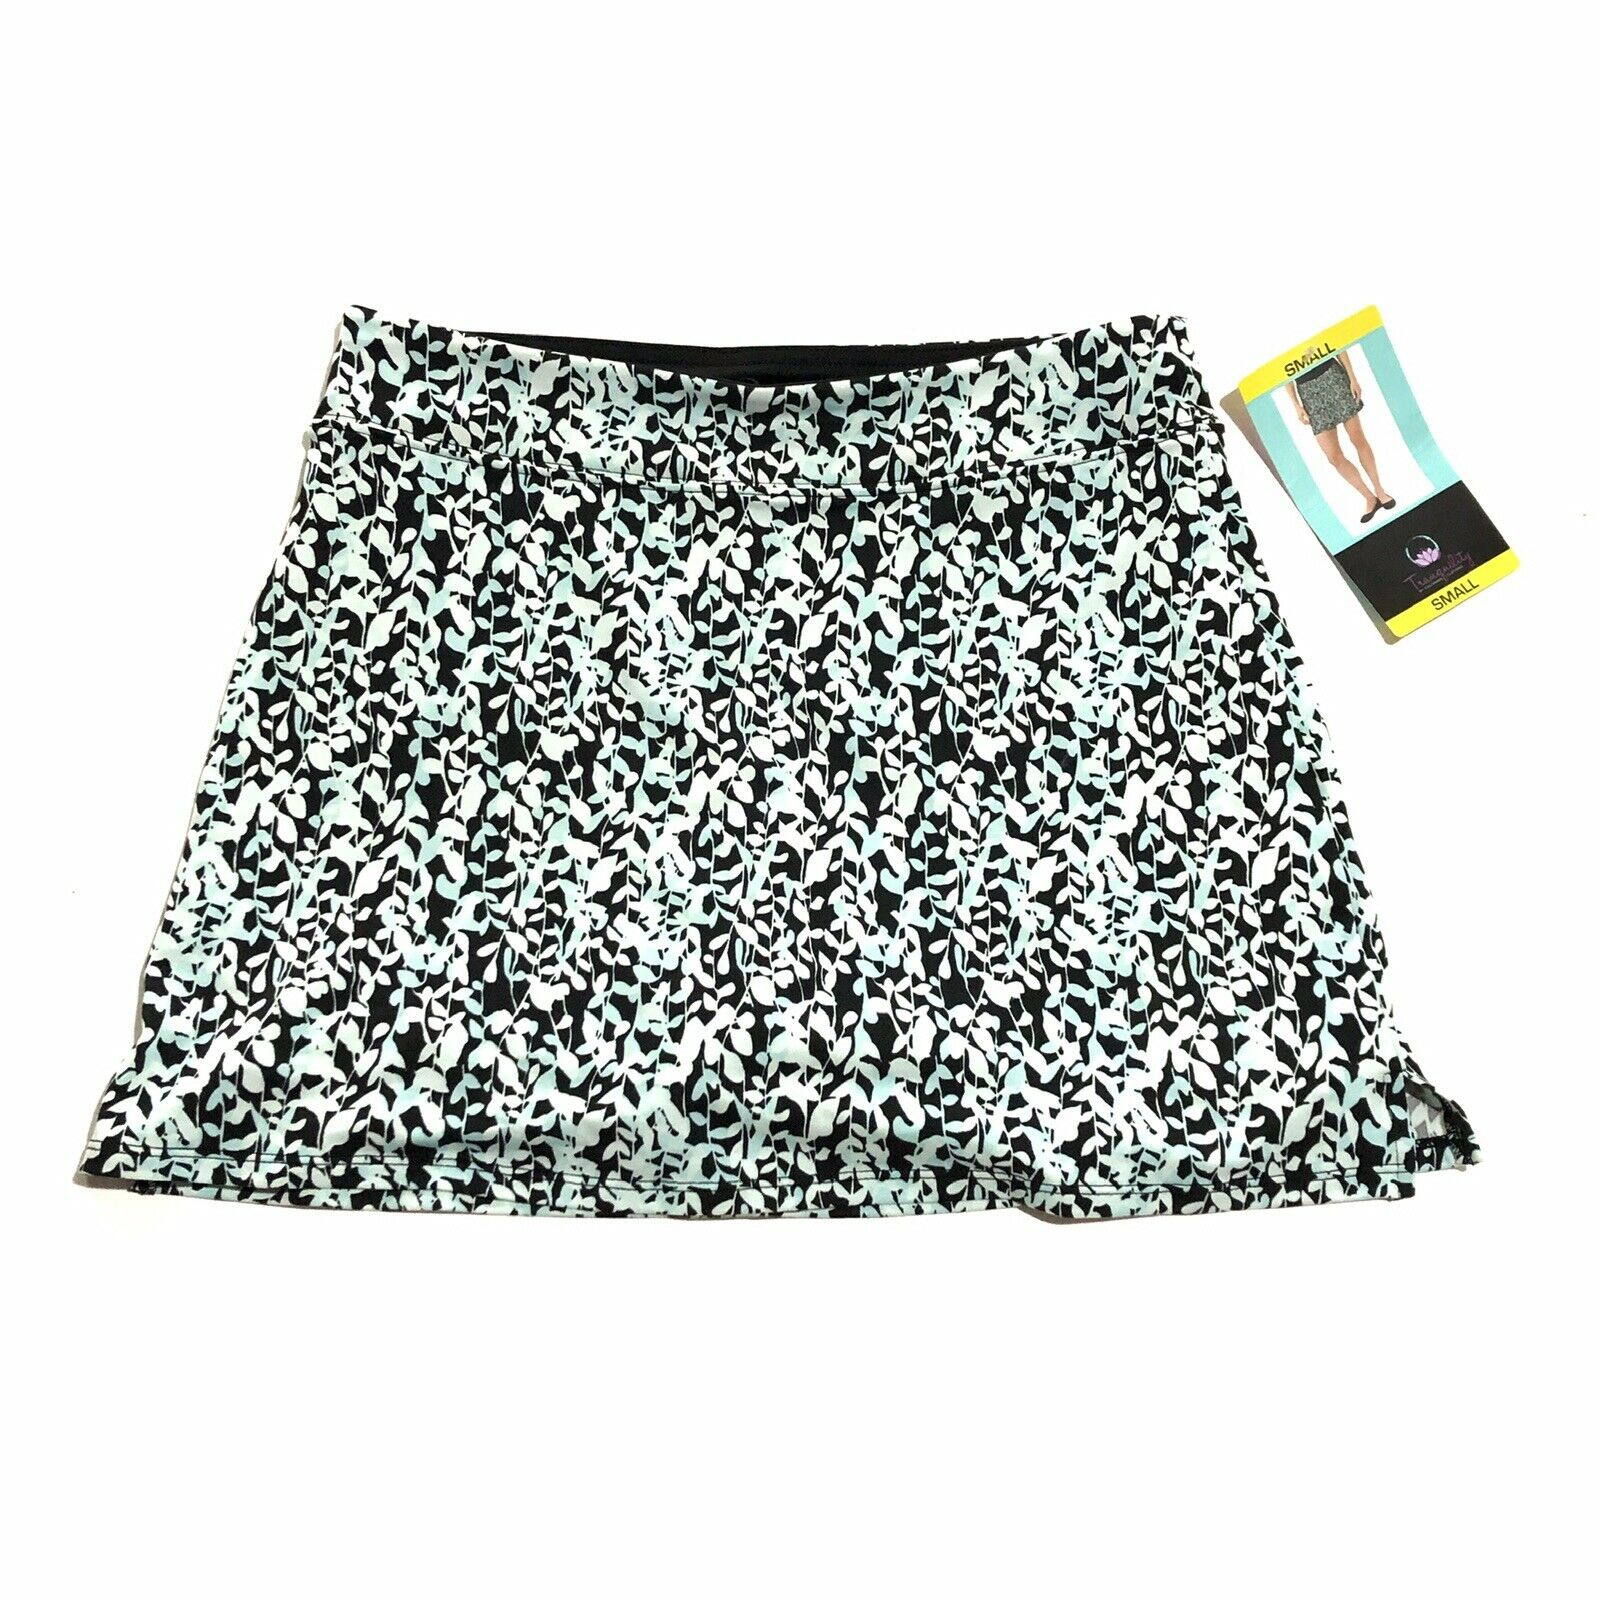 NWT Tranquility by Colorado Clothing Skort in Dense Leaves Sz: S